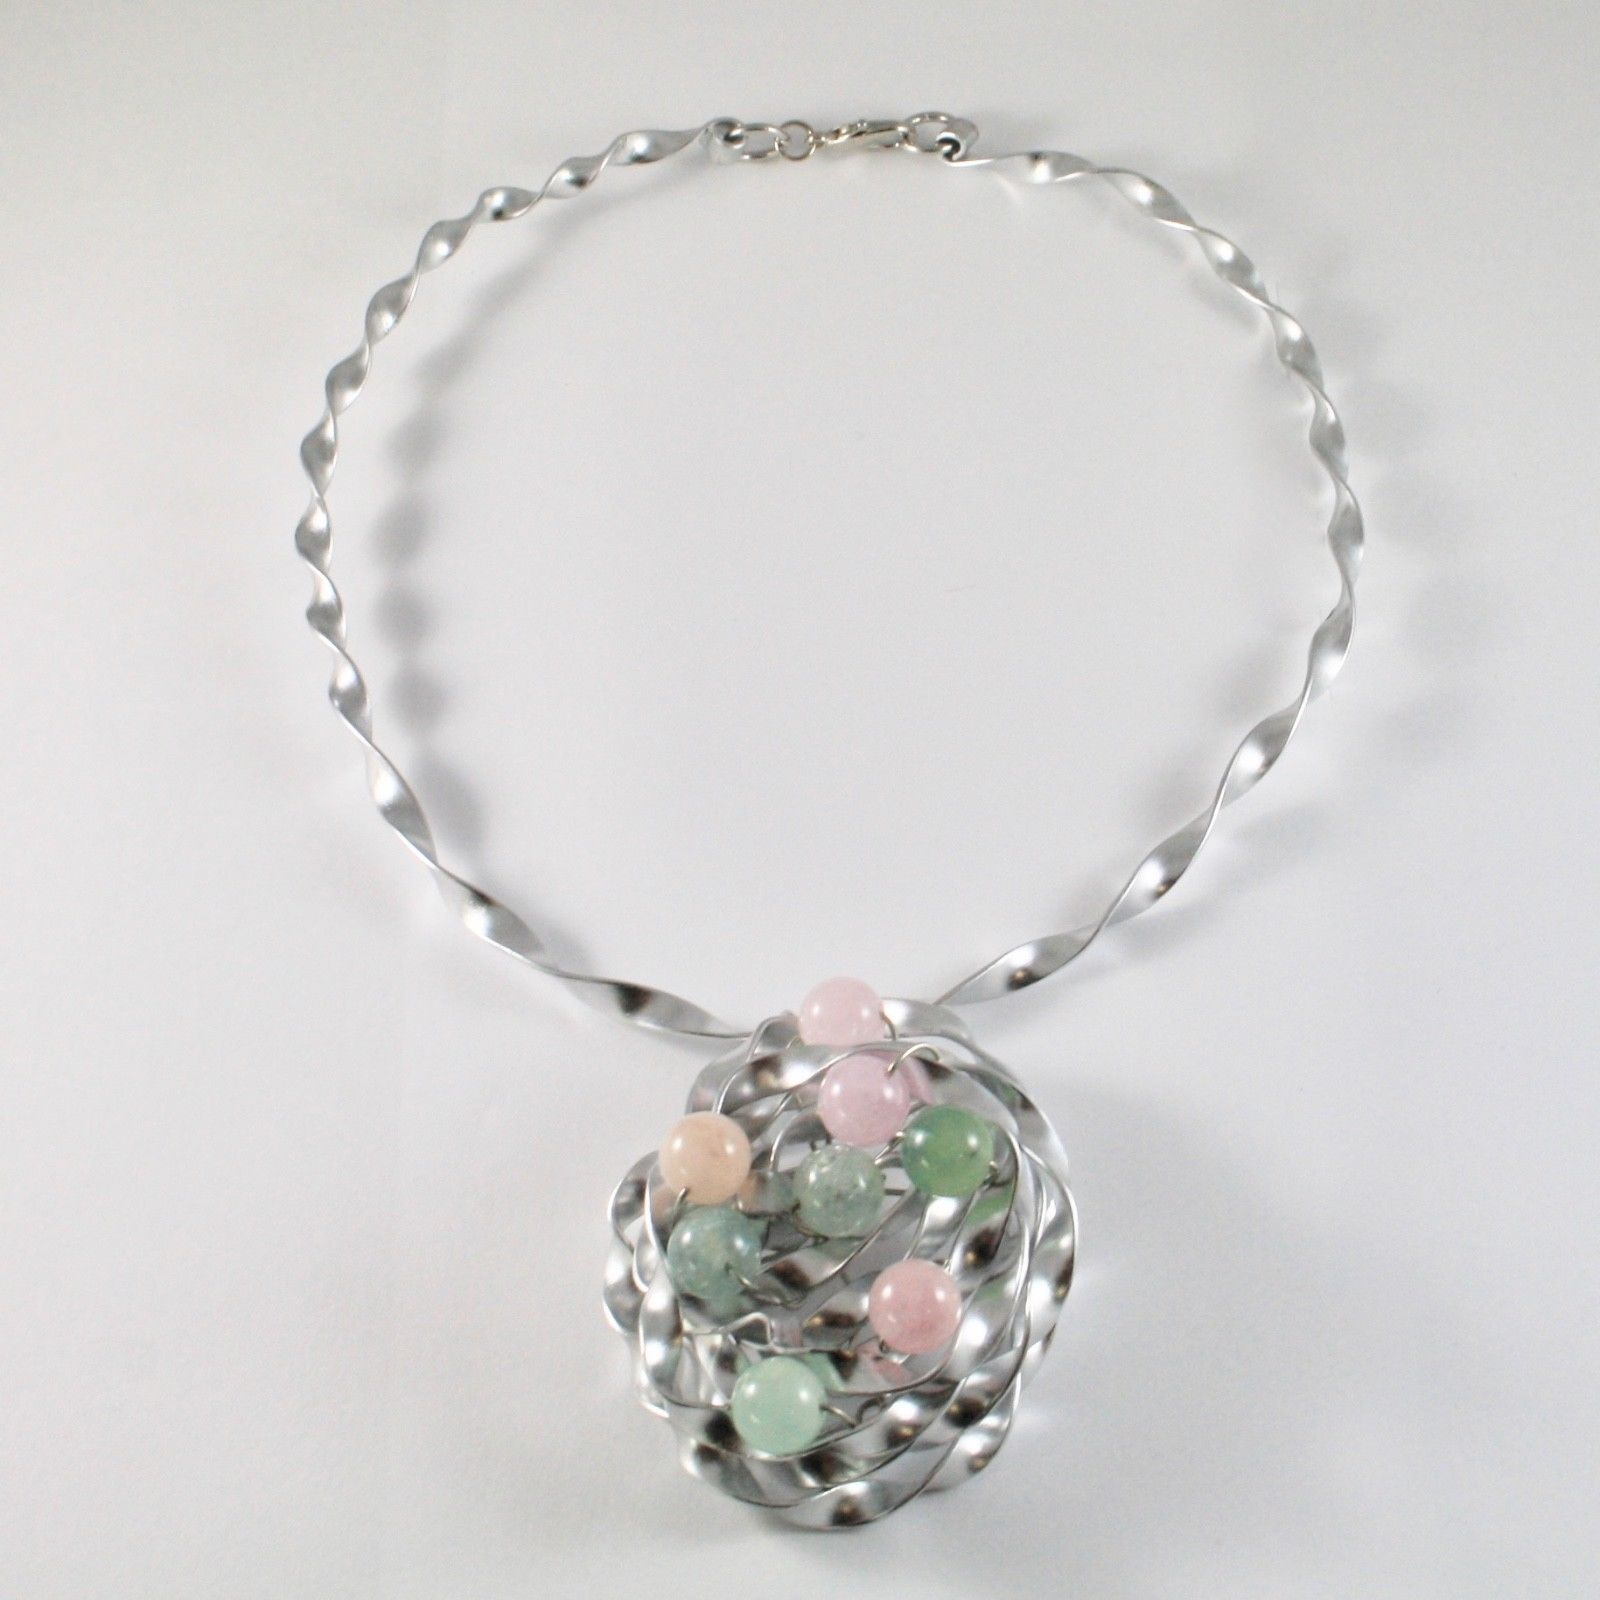 NECKLACE THE ALUMINIUM RIGID WITH CENTRAL WITH AQUAMARINE MULTICOLOUR